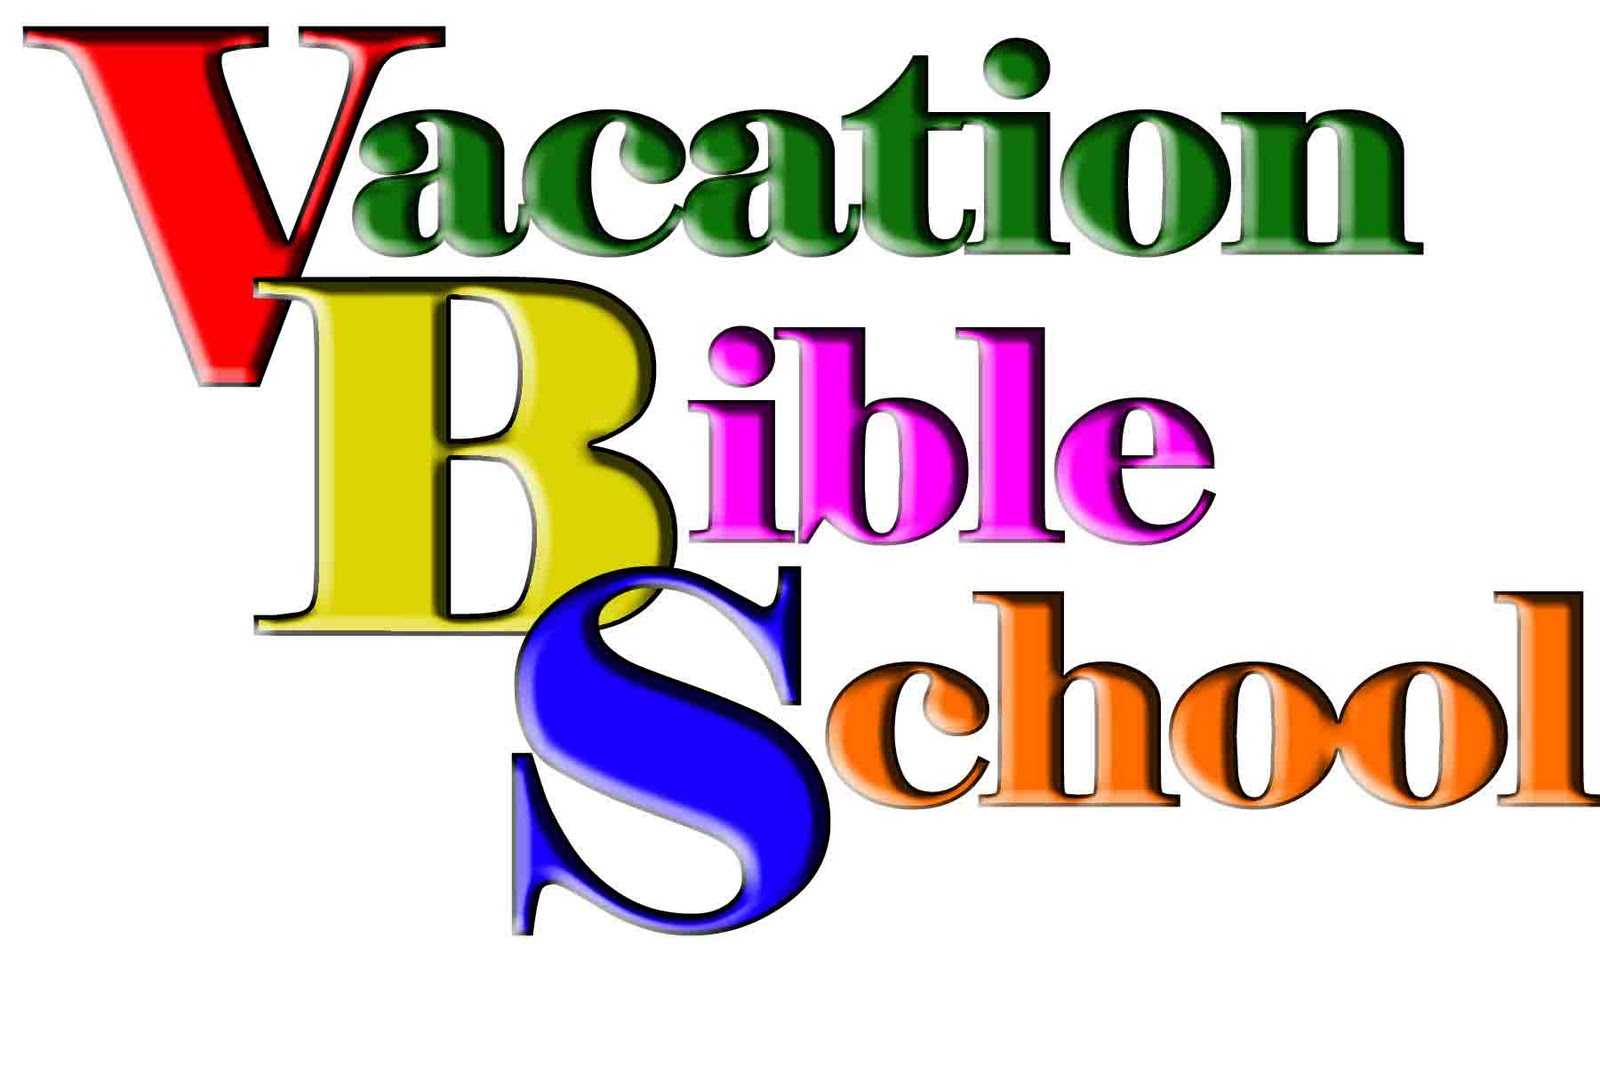 vacation bible school ibc brussels international baptist church rh ibcbrussels com vacation bible school 2017 clipart vacation bible school clip art free